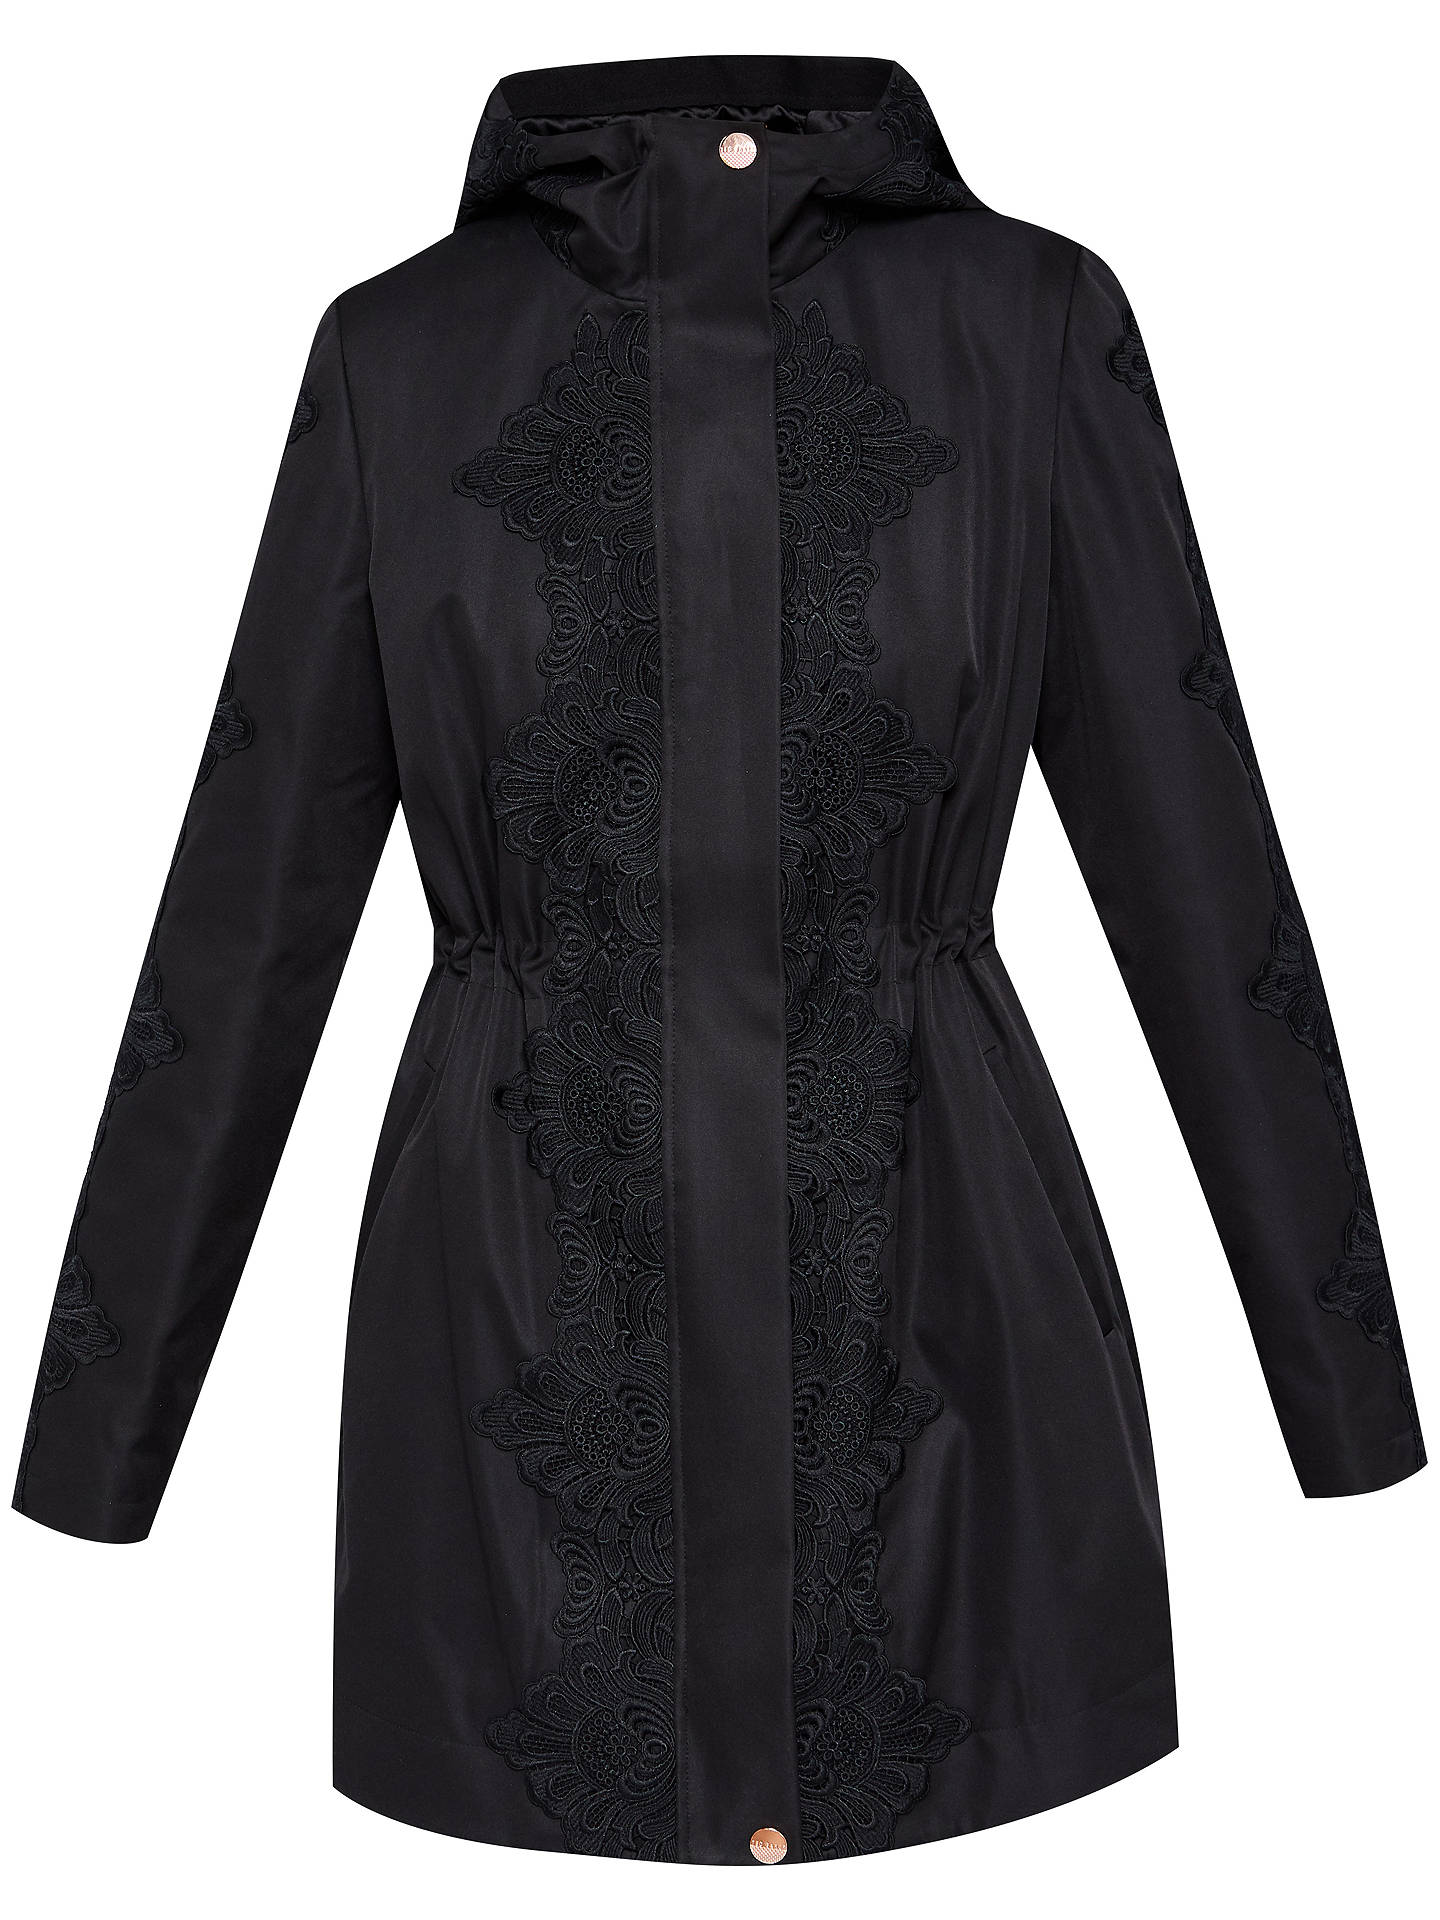 BuyTed Baker Luceen Lace Detail Parker, Black, 0 Online at johnlewis.com